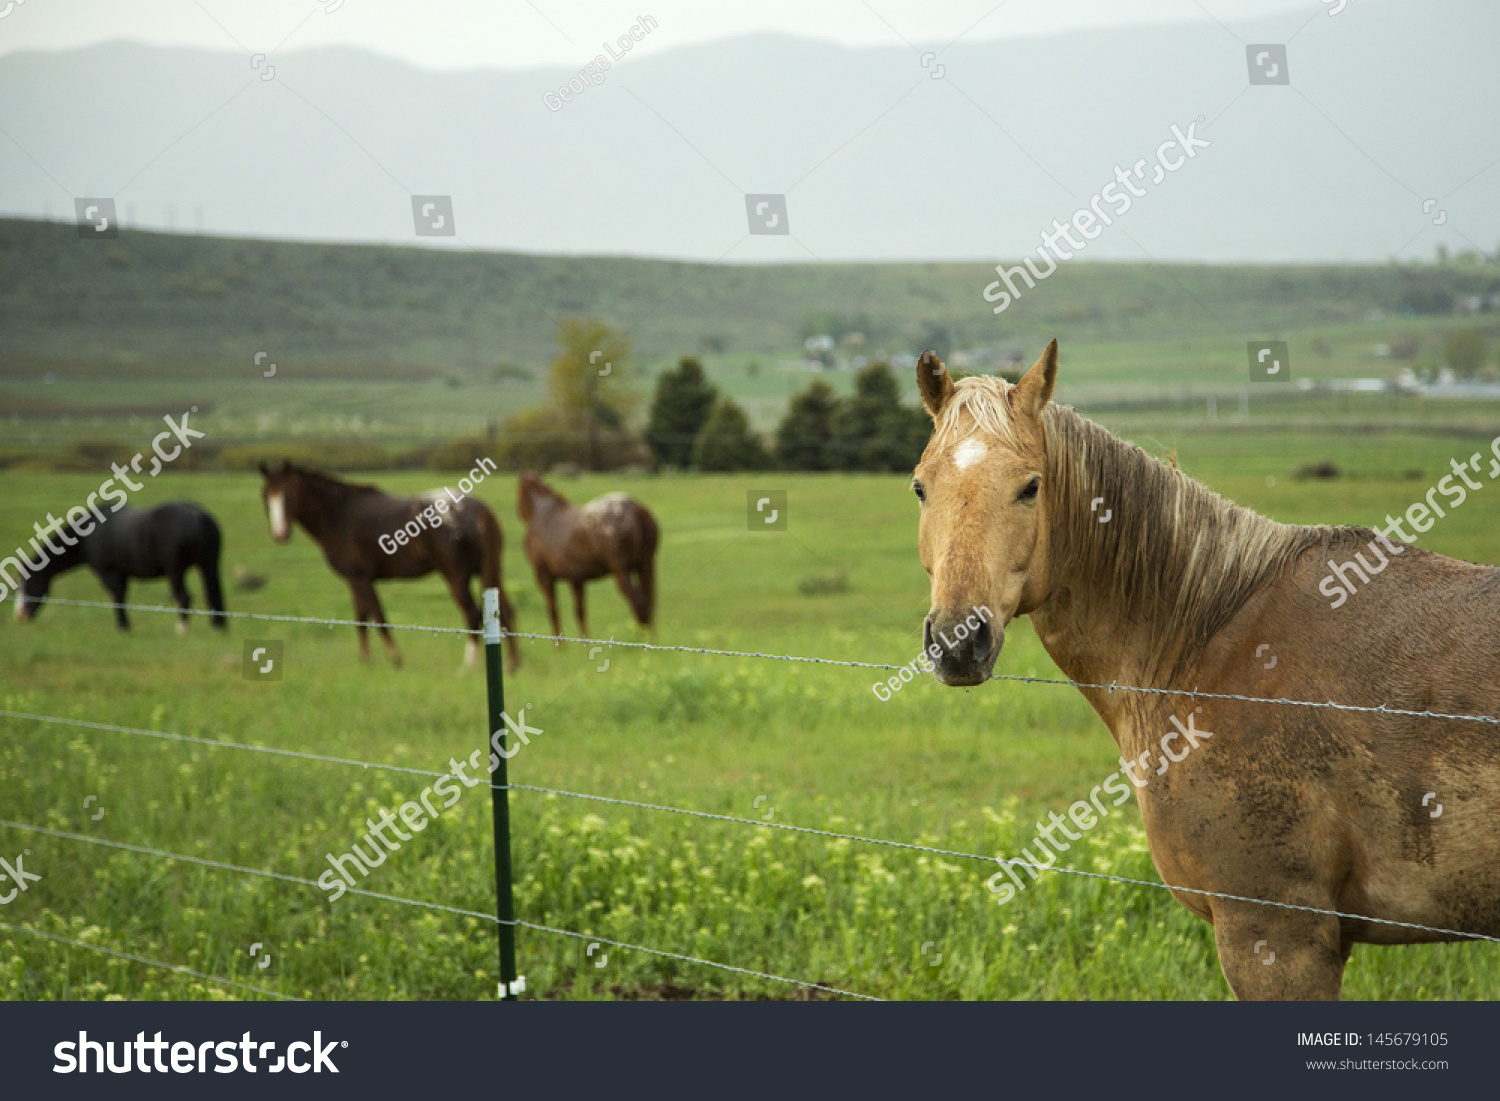 Horses Standing Behind Wire Fence Pasture Stock Photo (Edit Now ...